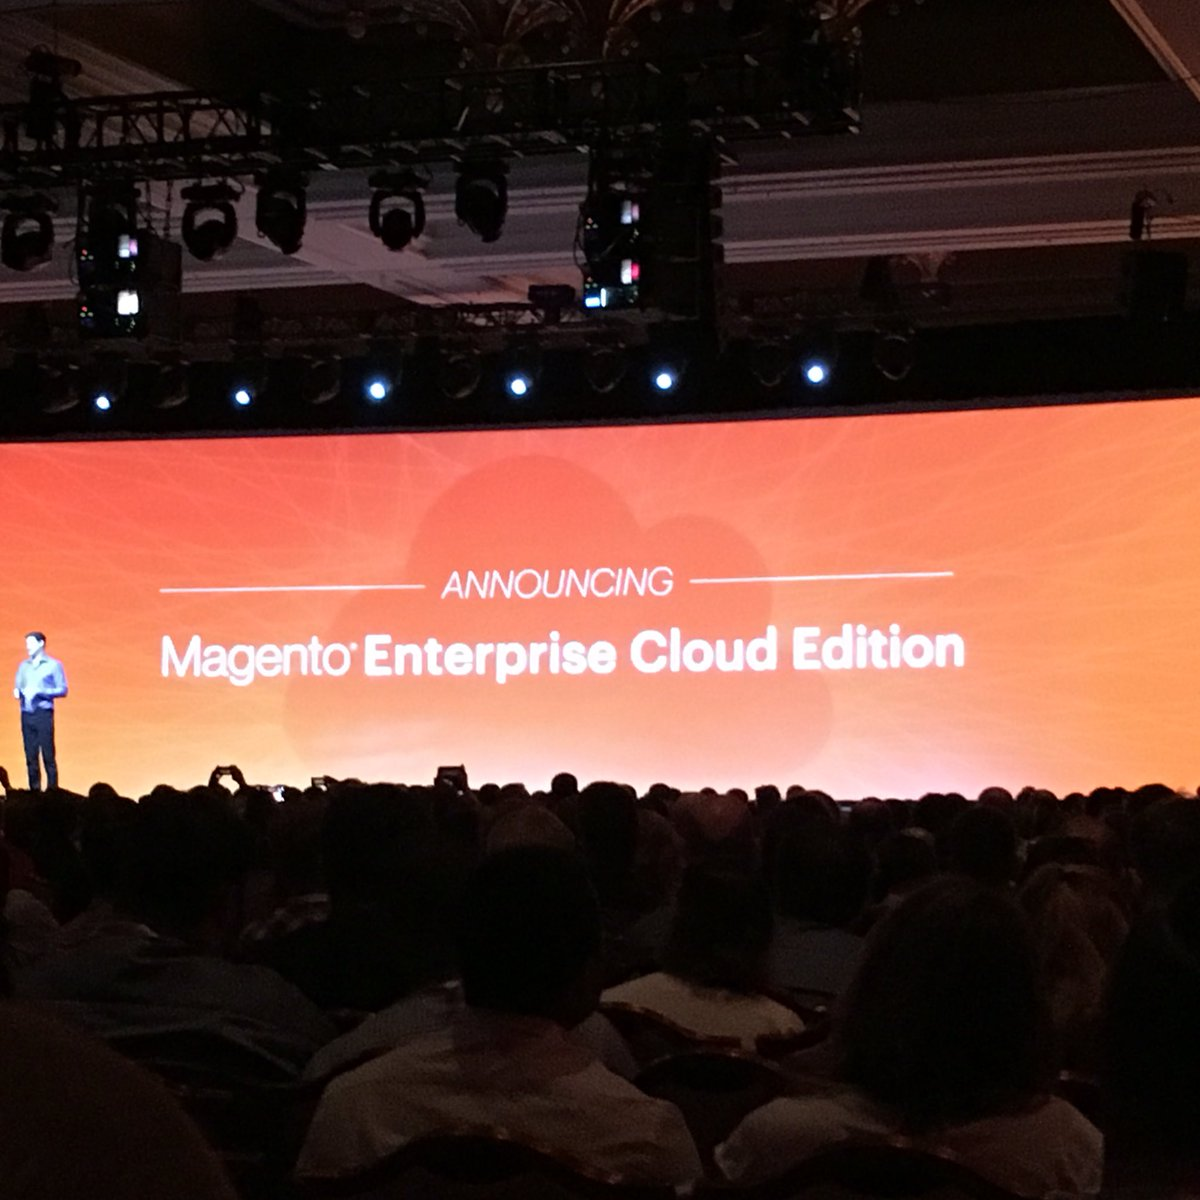 garymediaspa: Well this is interesting....#MagentoImagine https://t.co/JngaCniYPr